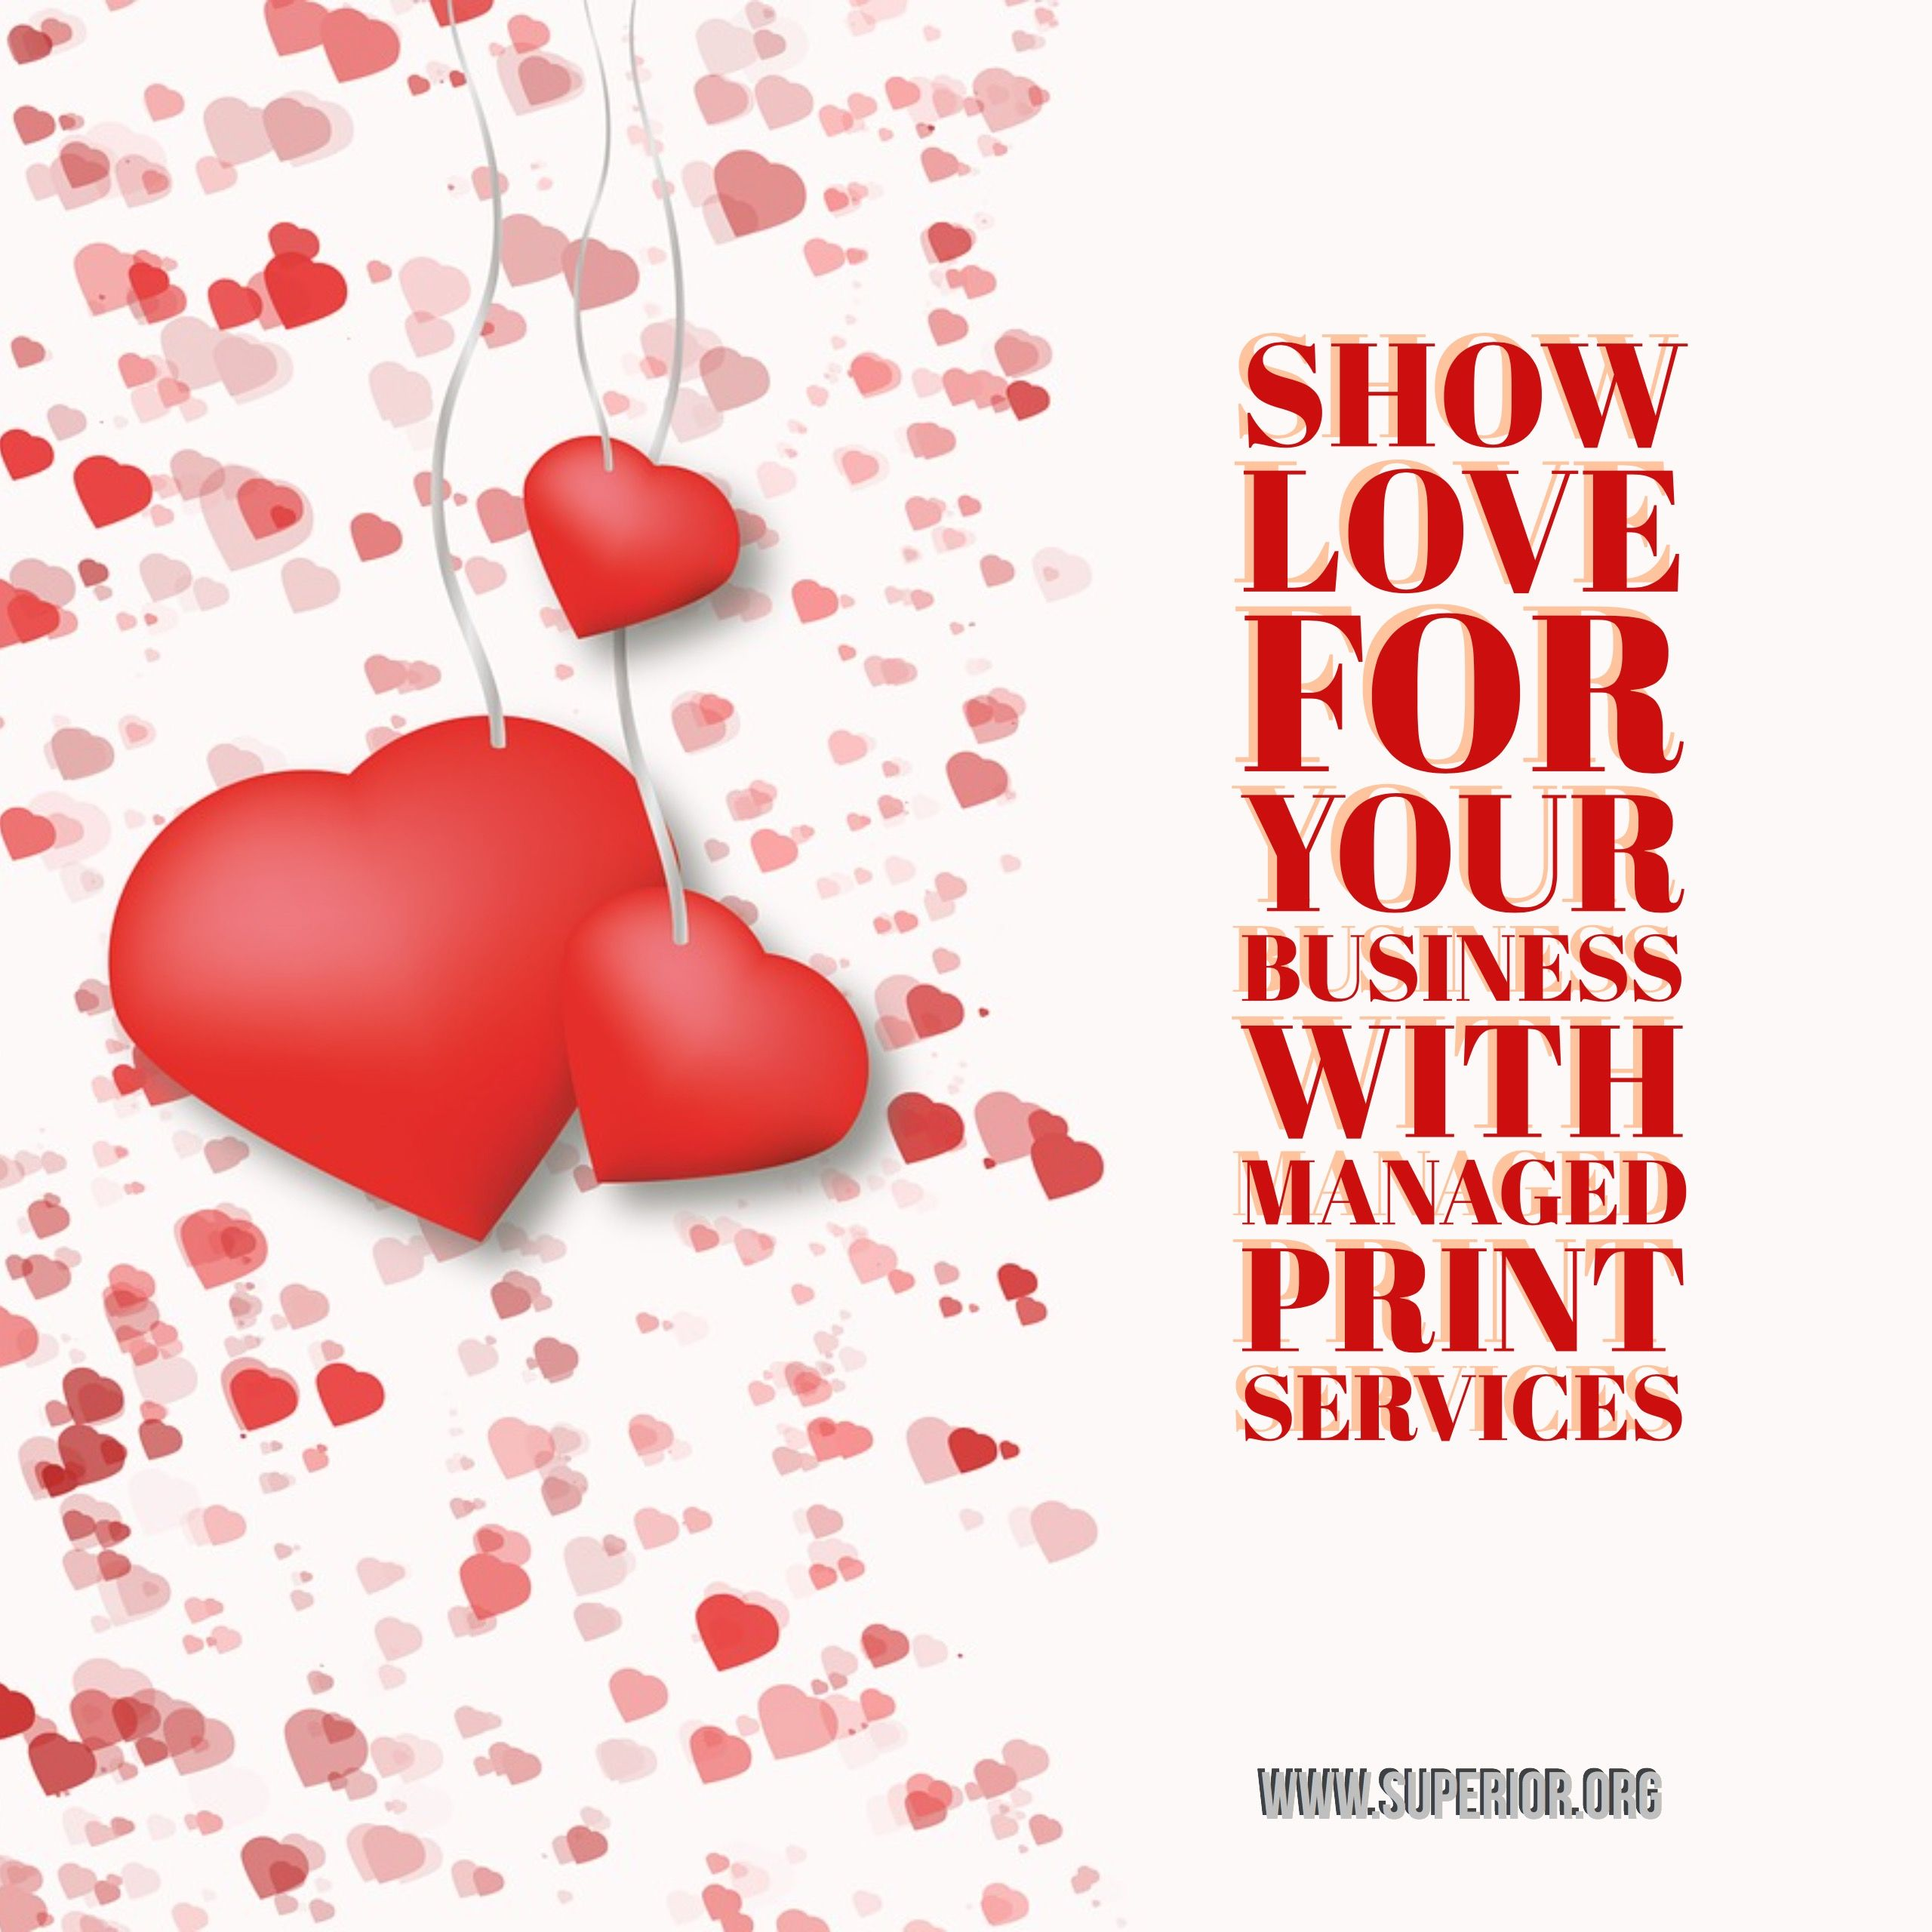 7 Positive Valentines Day Quotes For Work Detail Jan 31 2017 - Explore Angie Nieuwstads board Work Valentines Messages followed by 267 people on Pinterest.